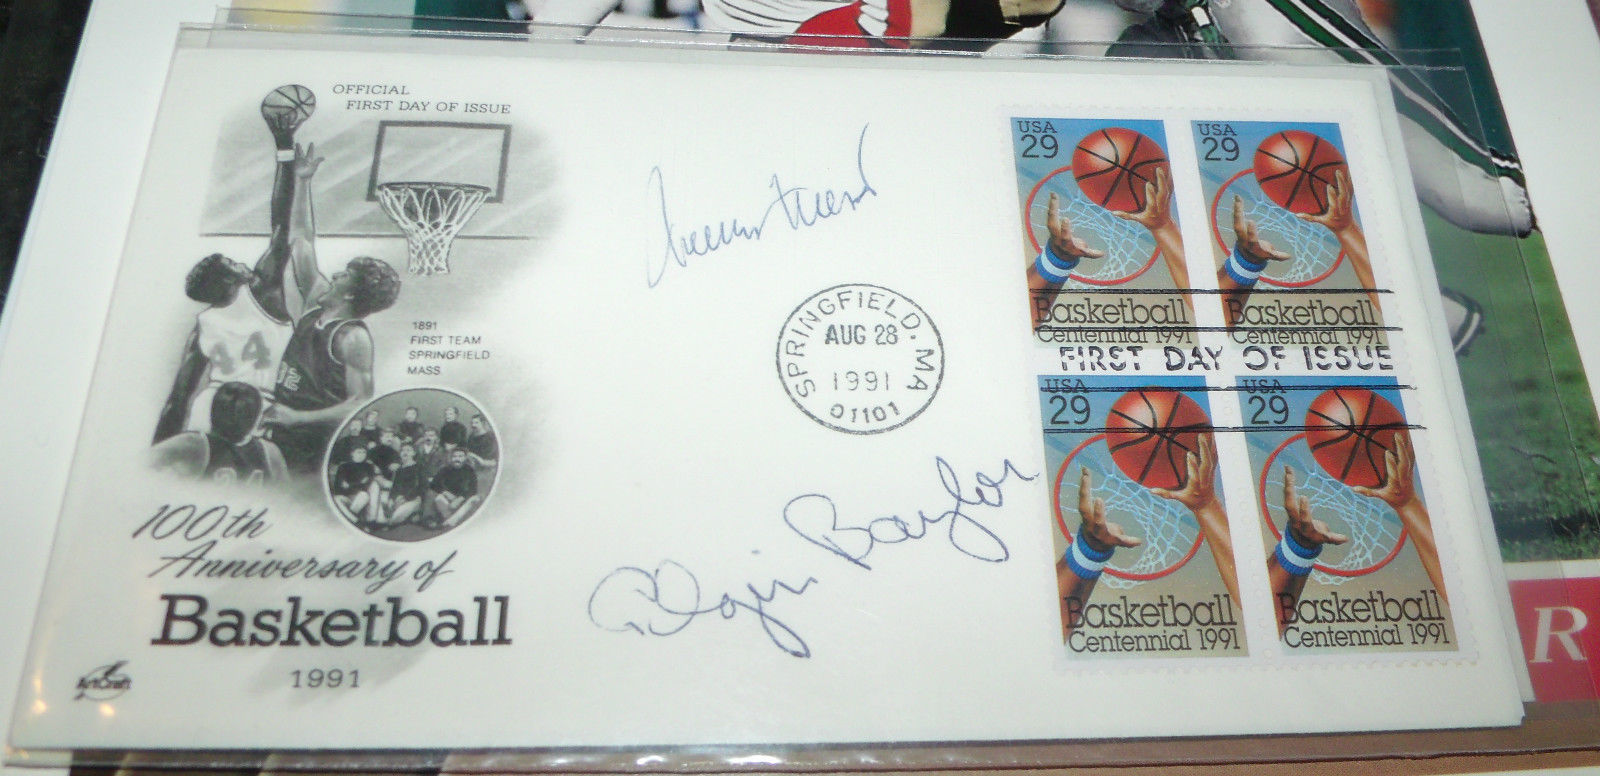 JERRY WEST & ELGIN BAYLOR HAND SIGNED FDC FIRST DAY COVER 100TH BASKETBALL